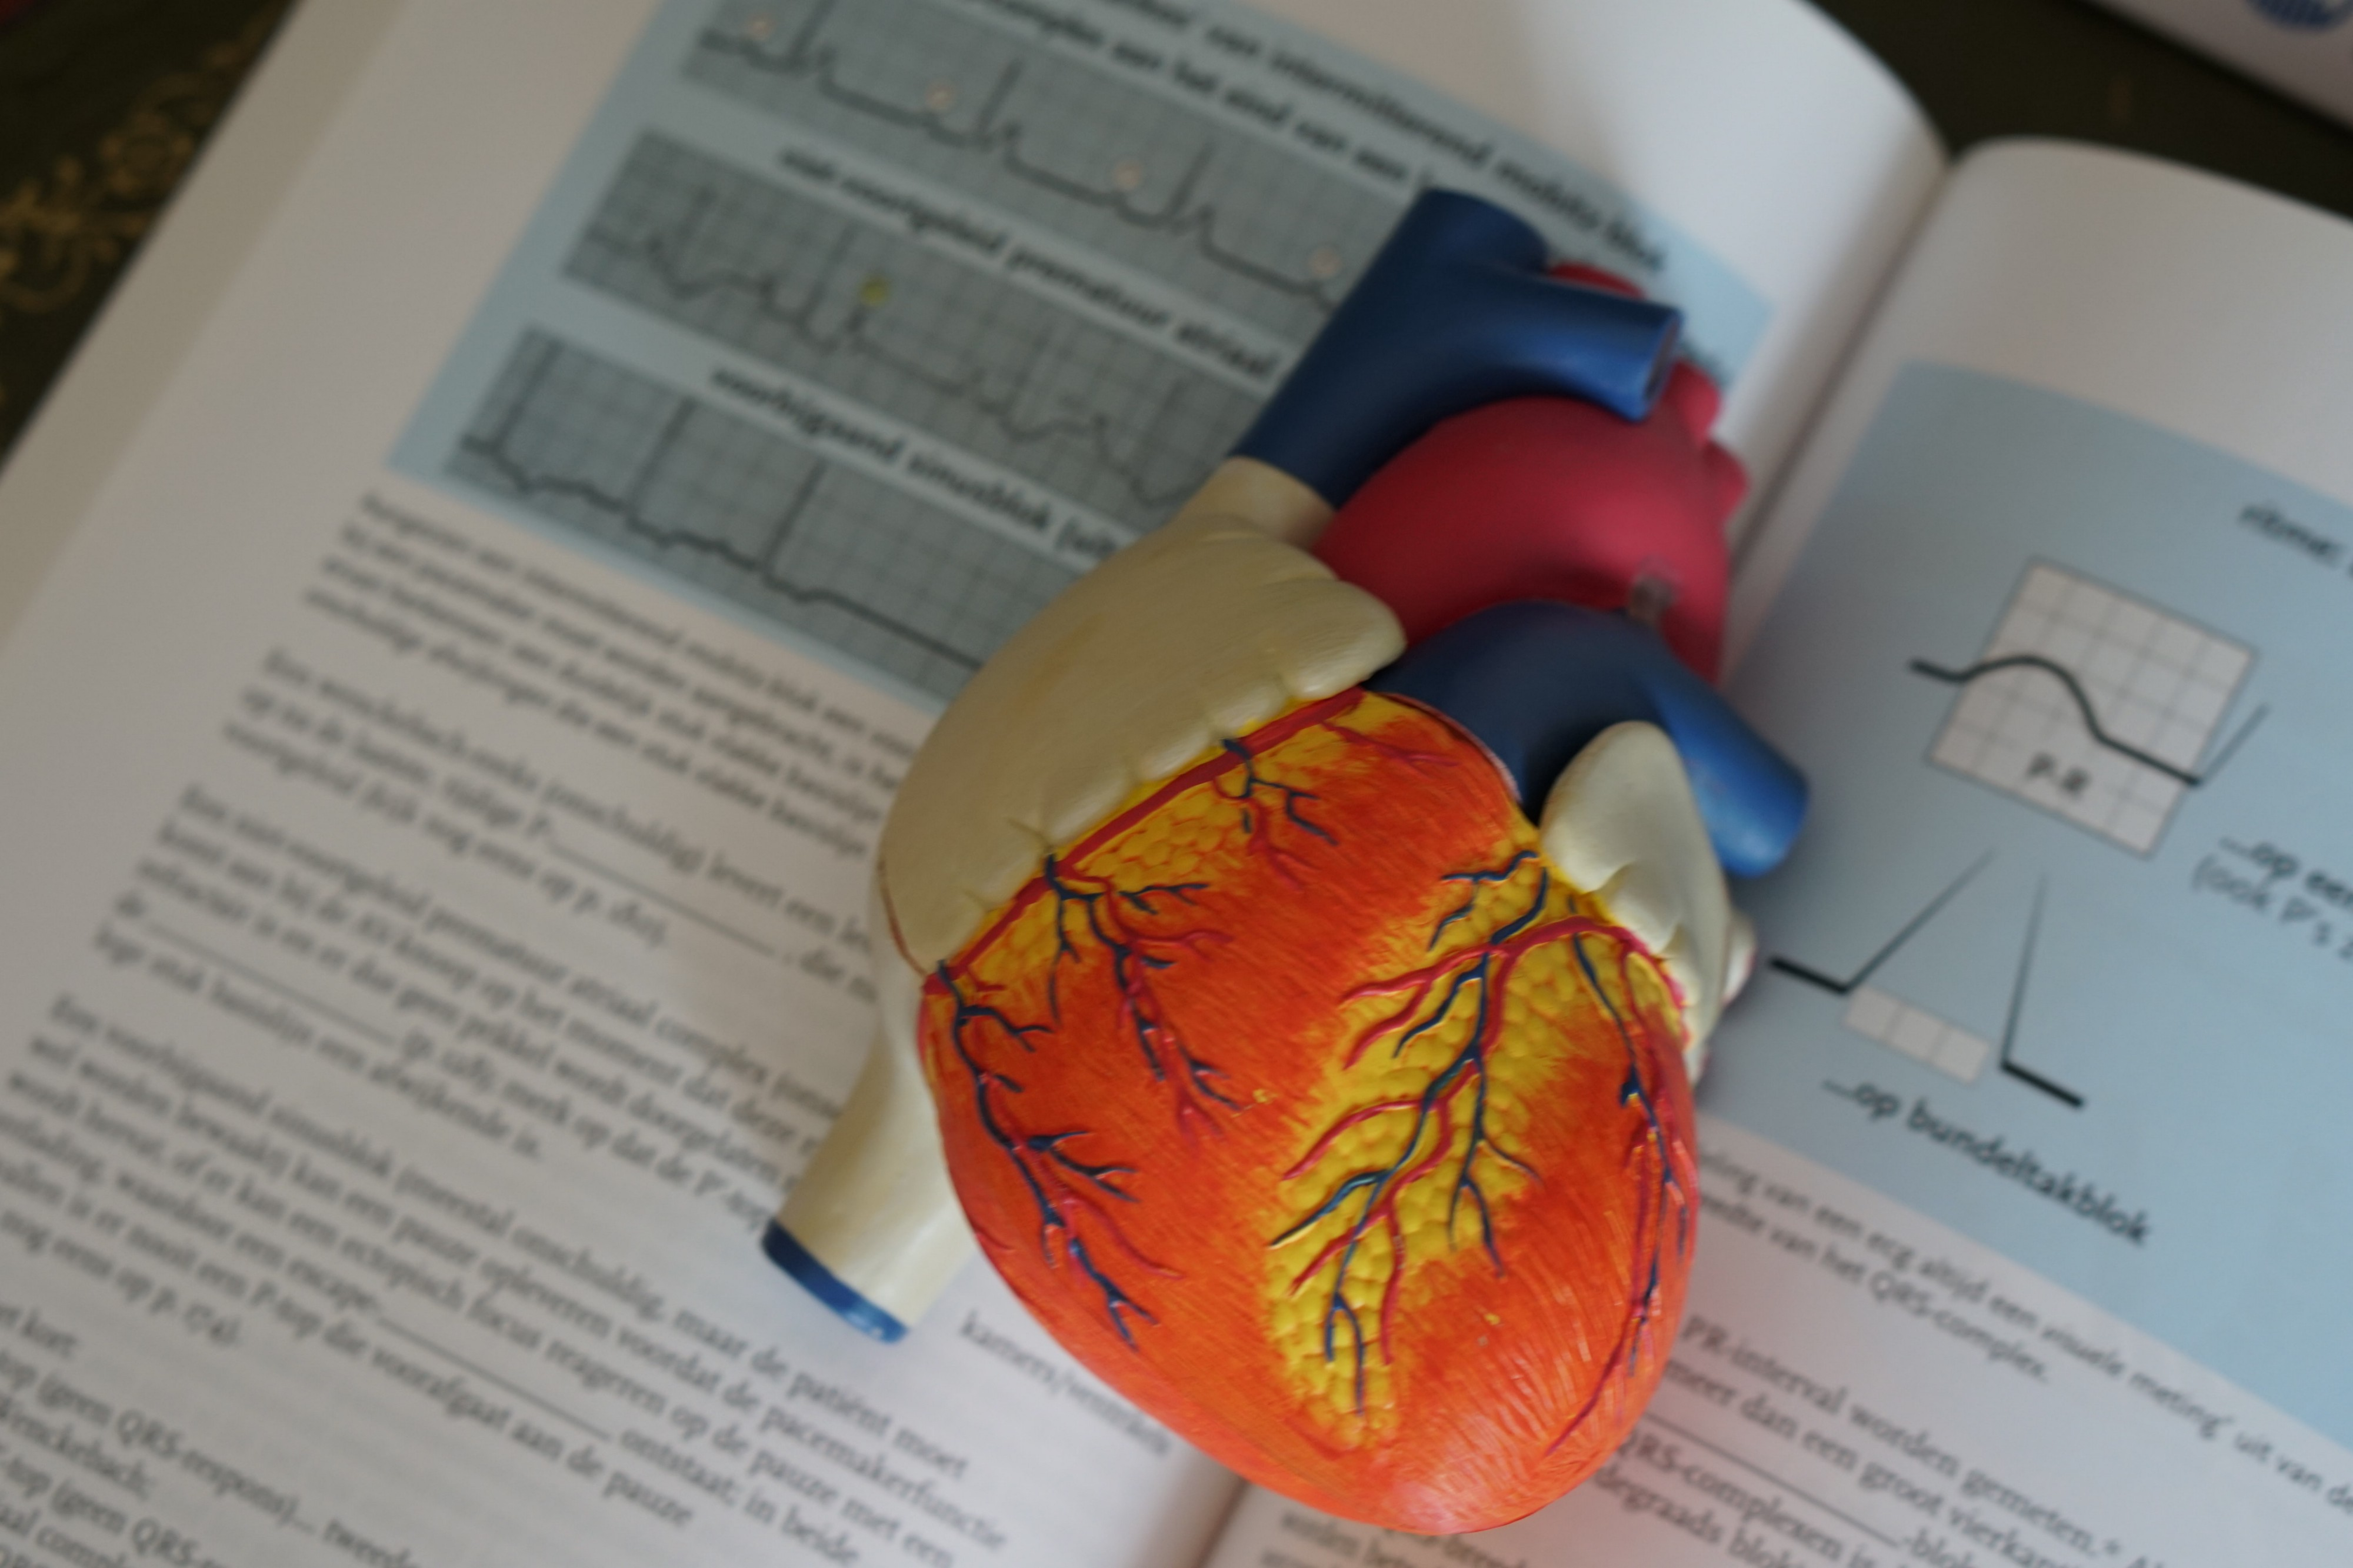 Model of a human heart over a medical textbook